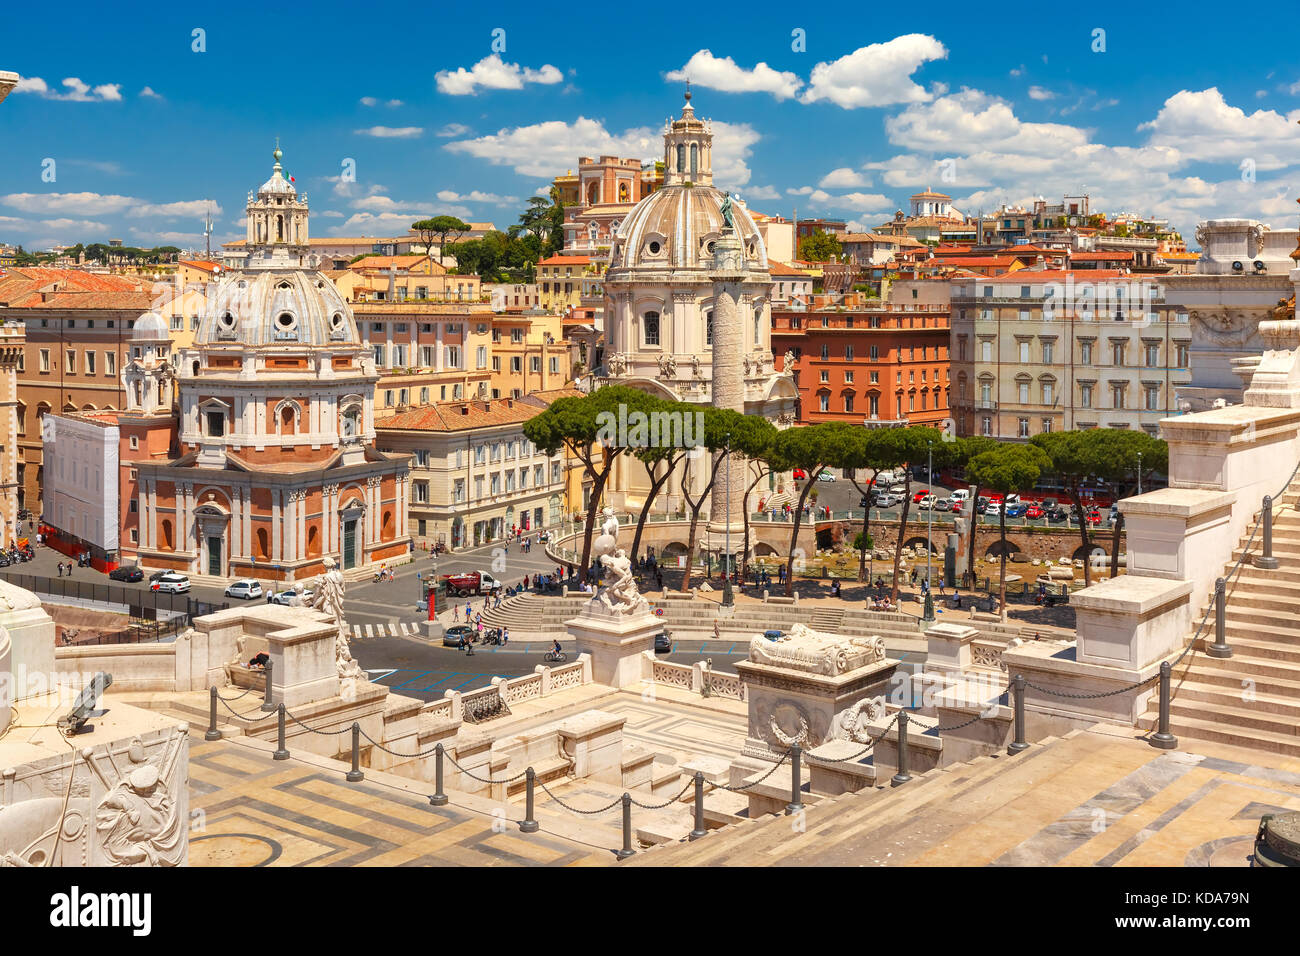 Ancient Trajan Forum in Rome, Italy - Stock Image